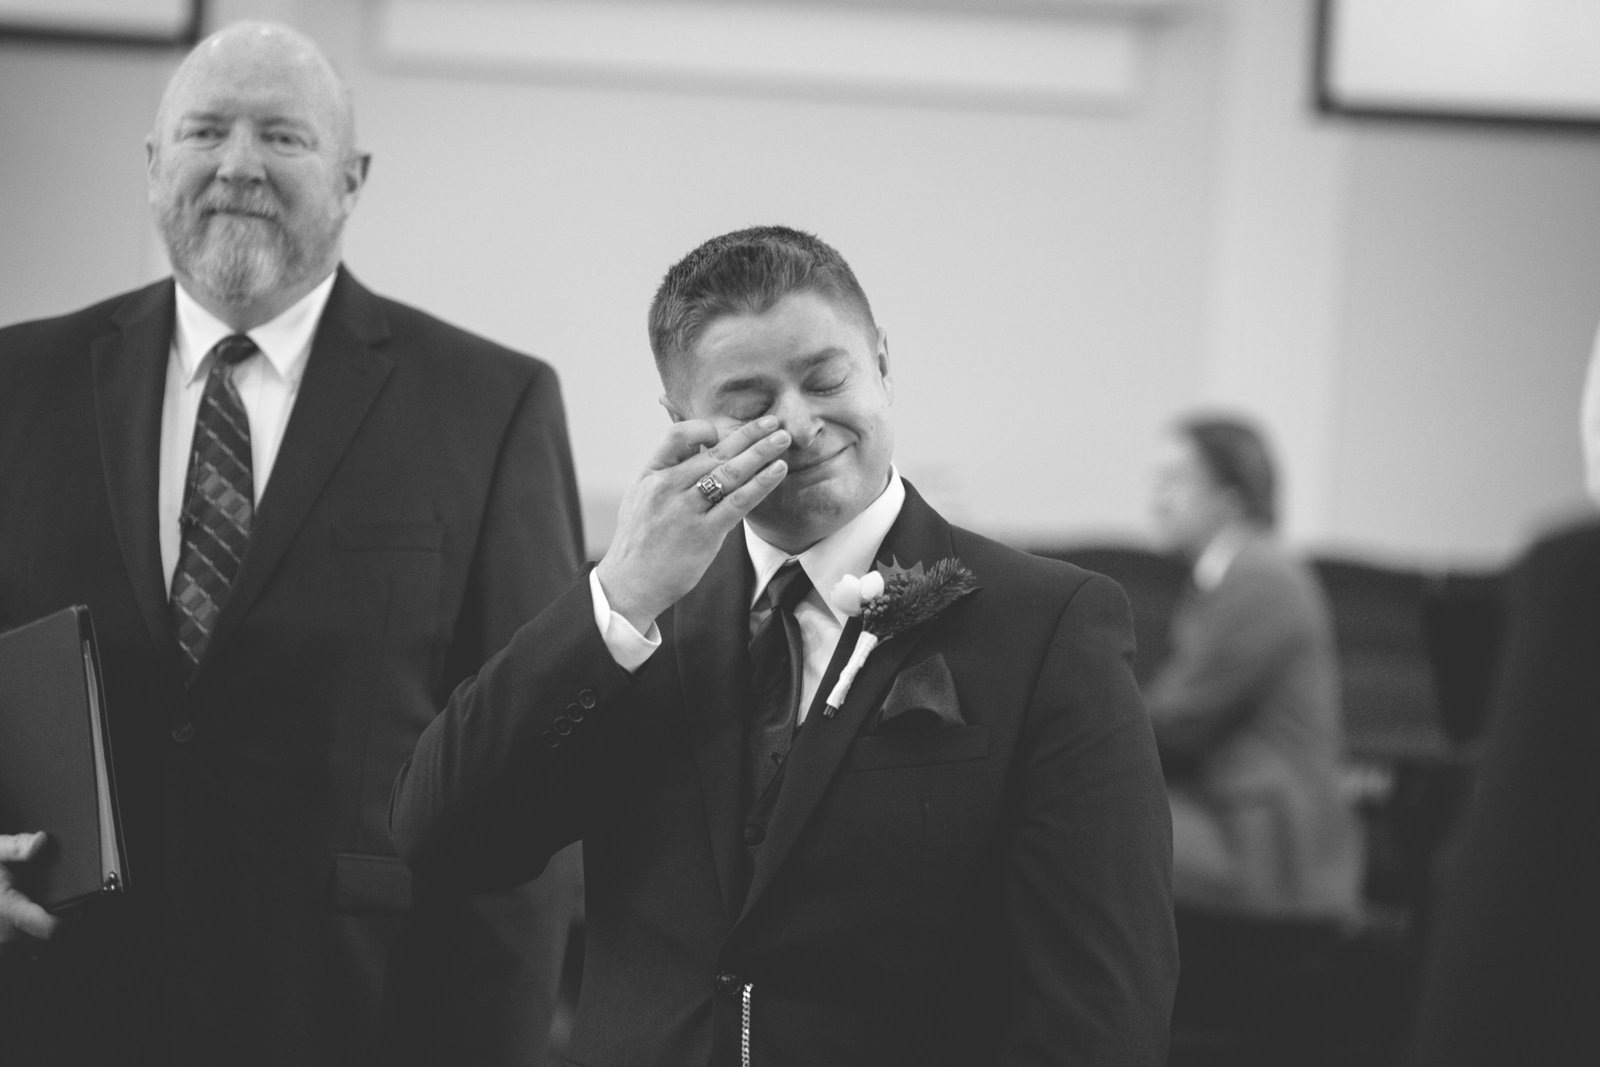 groom wipes a tear from his eye as his bride comes down the aisle of a church in pittsburgh